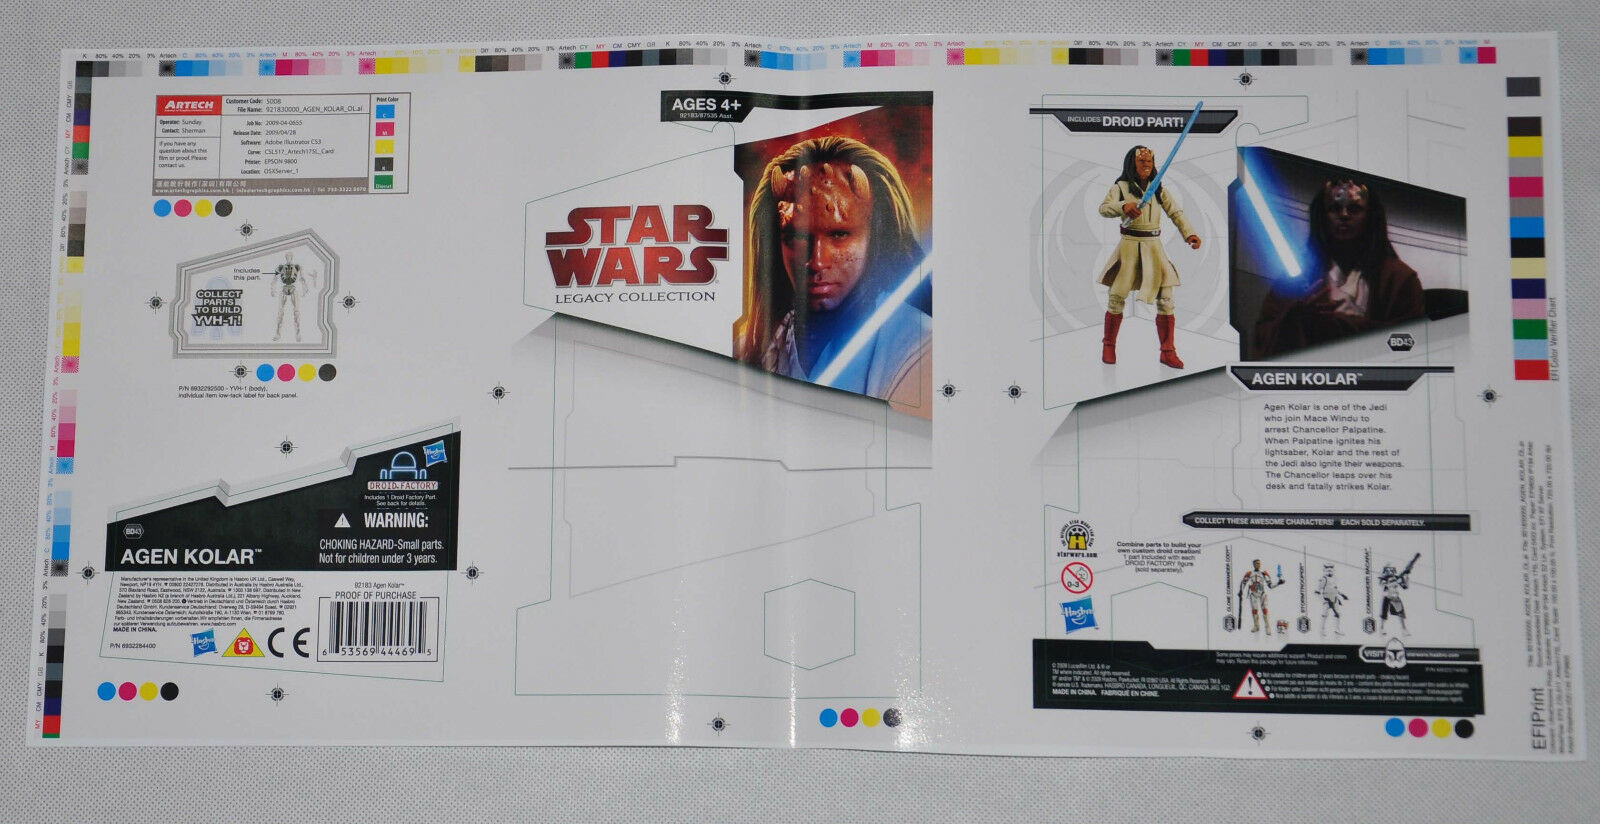 Star wars Legacy collection Agen Kolar  proof card sheet predotype  5